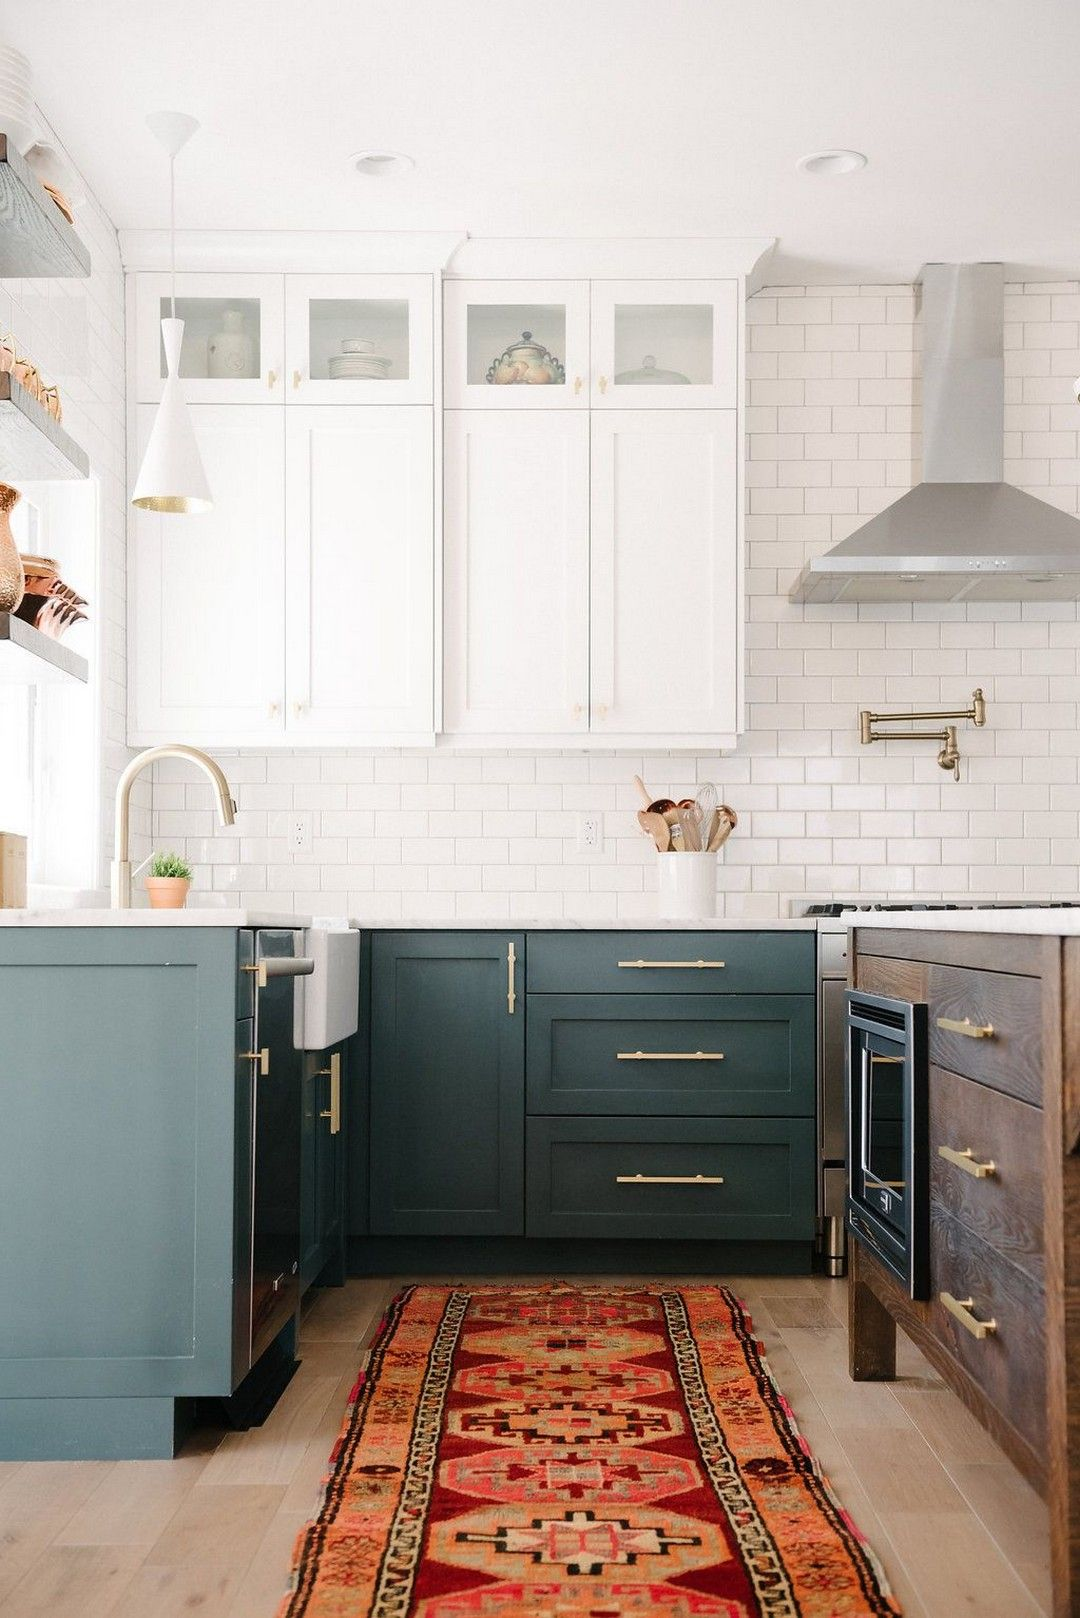 40 Finishing Touches To Tall Kitchen Cabinets Remodel Https Kitchendecorpad Com Farmhouse Style Kitchen Decor Kitchen Cabinet Remodel Kitchen Cabinets Decor